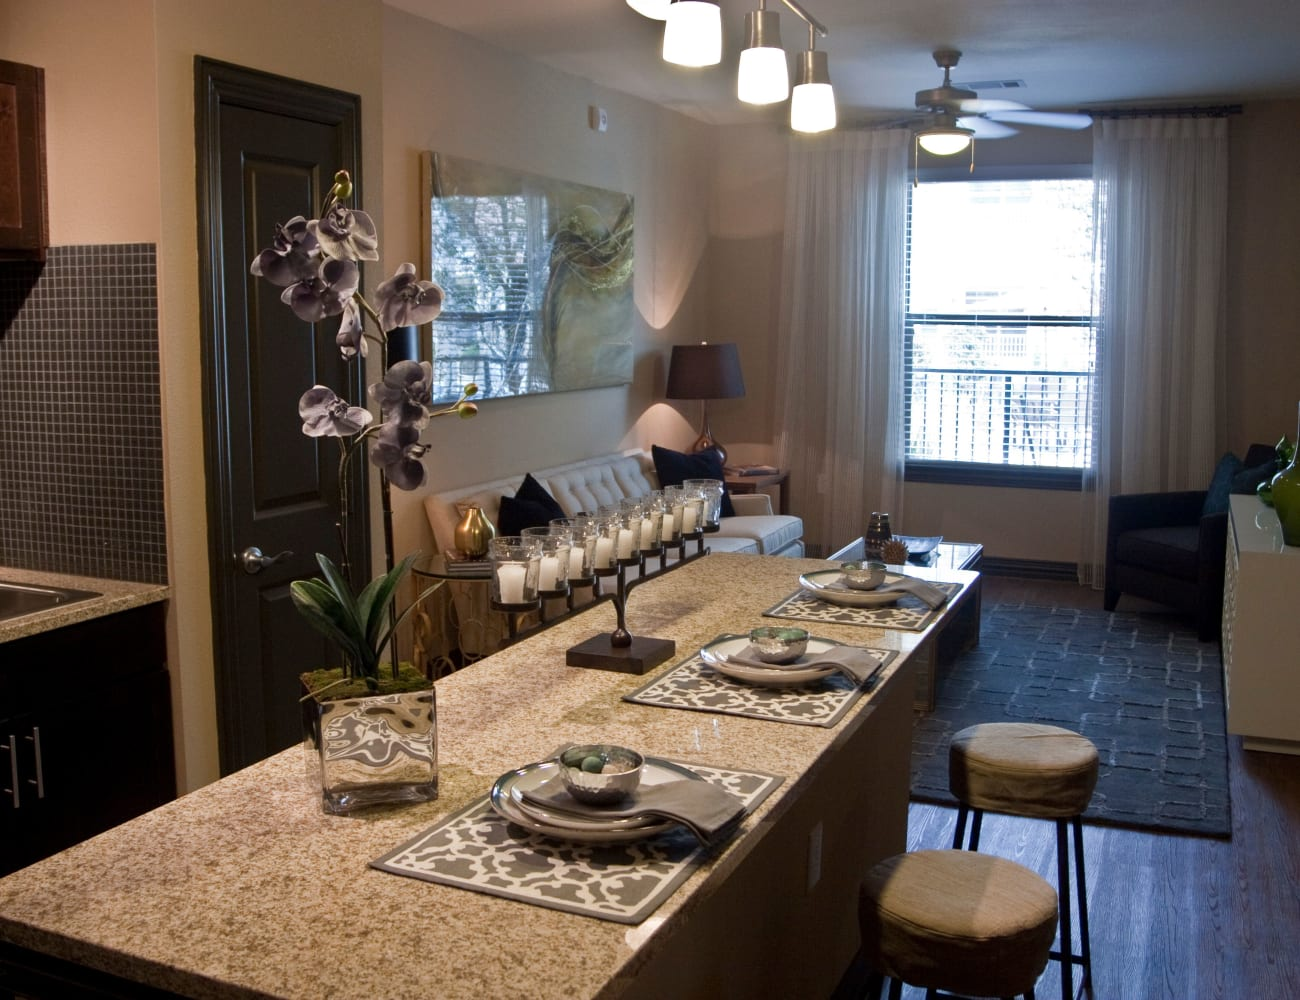 Kitchen with a breakfast bar and hardwood floors at The Blvd in Irving, Texas